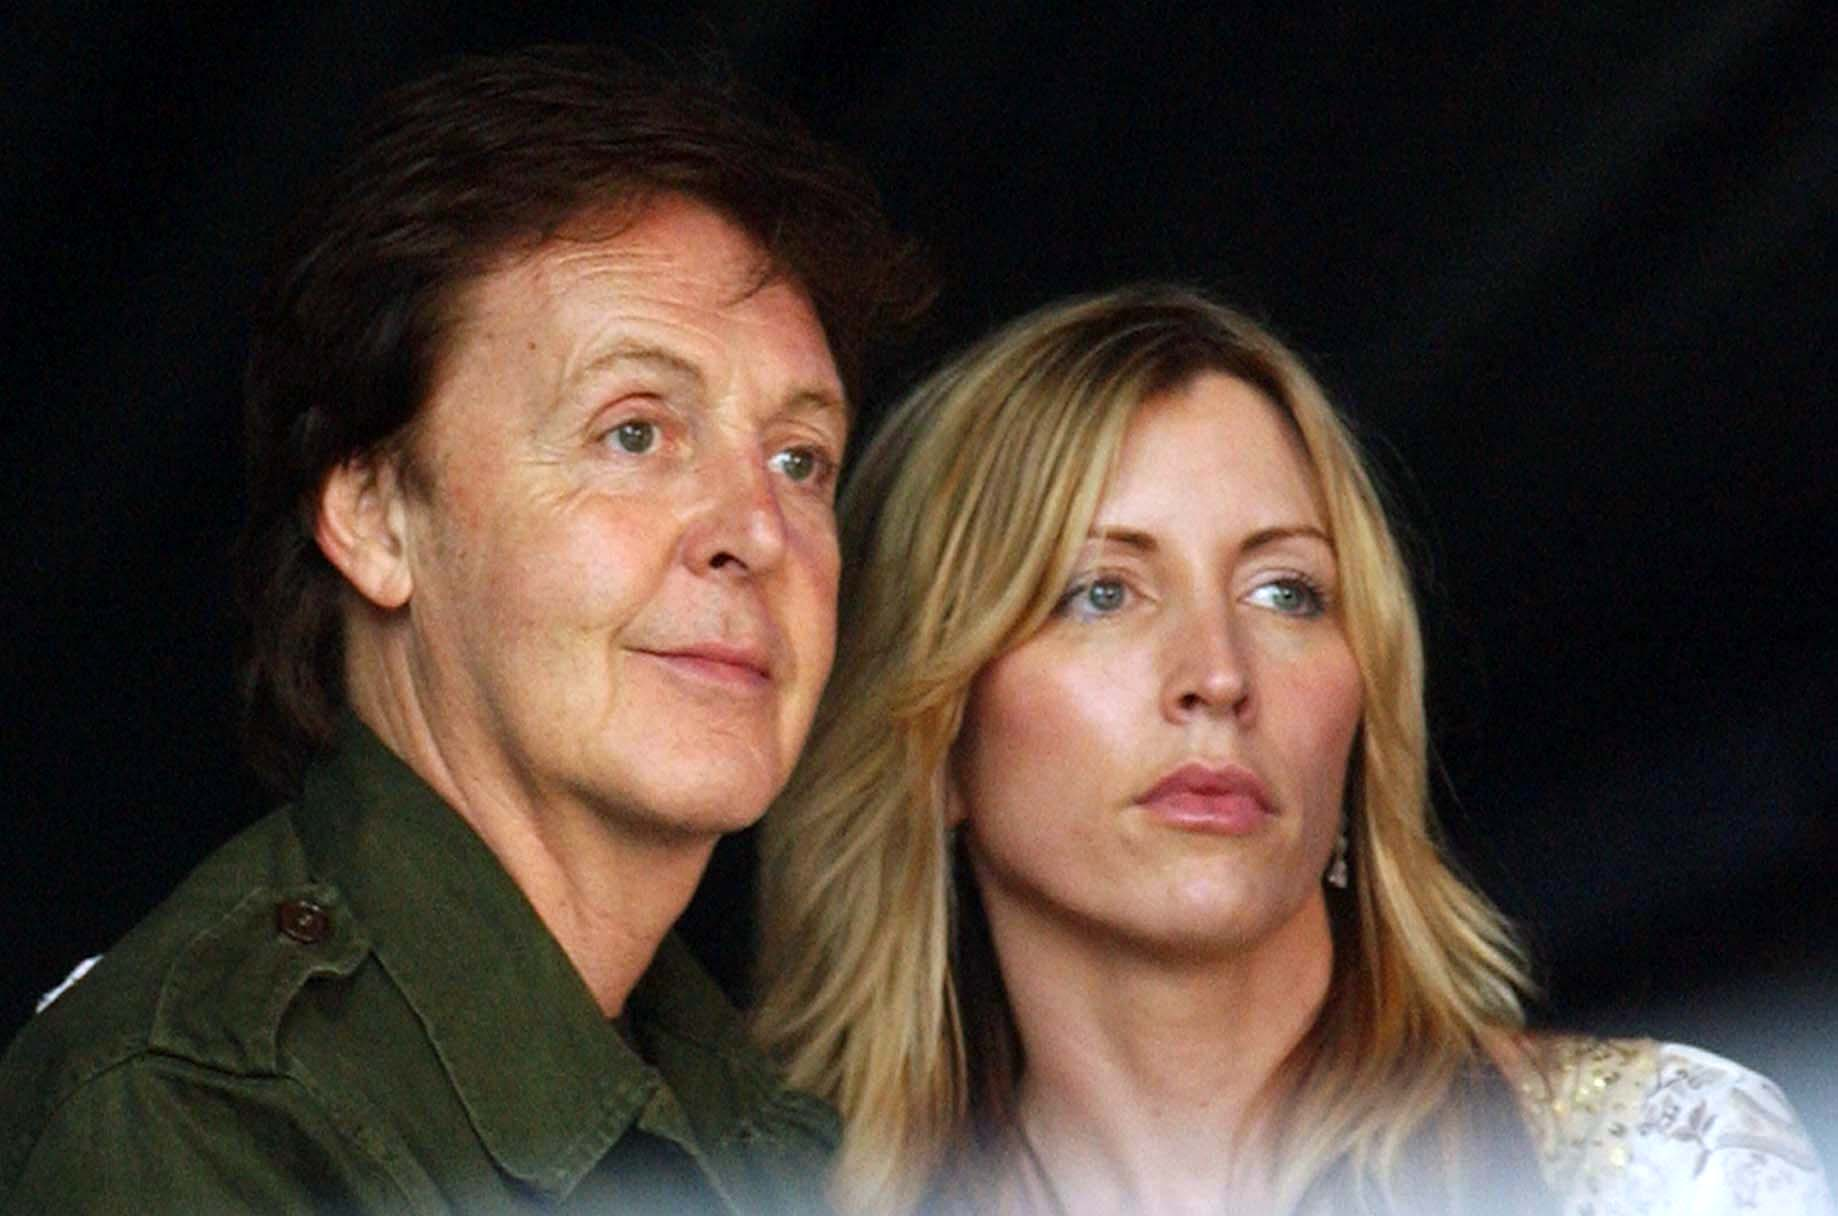 Paul McCartney and Heather Mills McCartney watch Keane performing on stage at the Live 8 concert in Hyde Park, London, Saturd